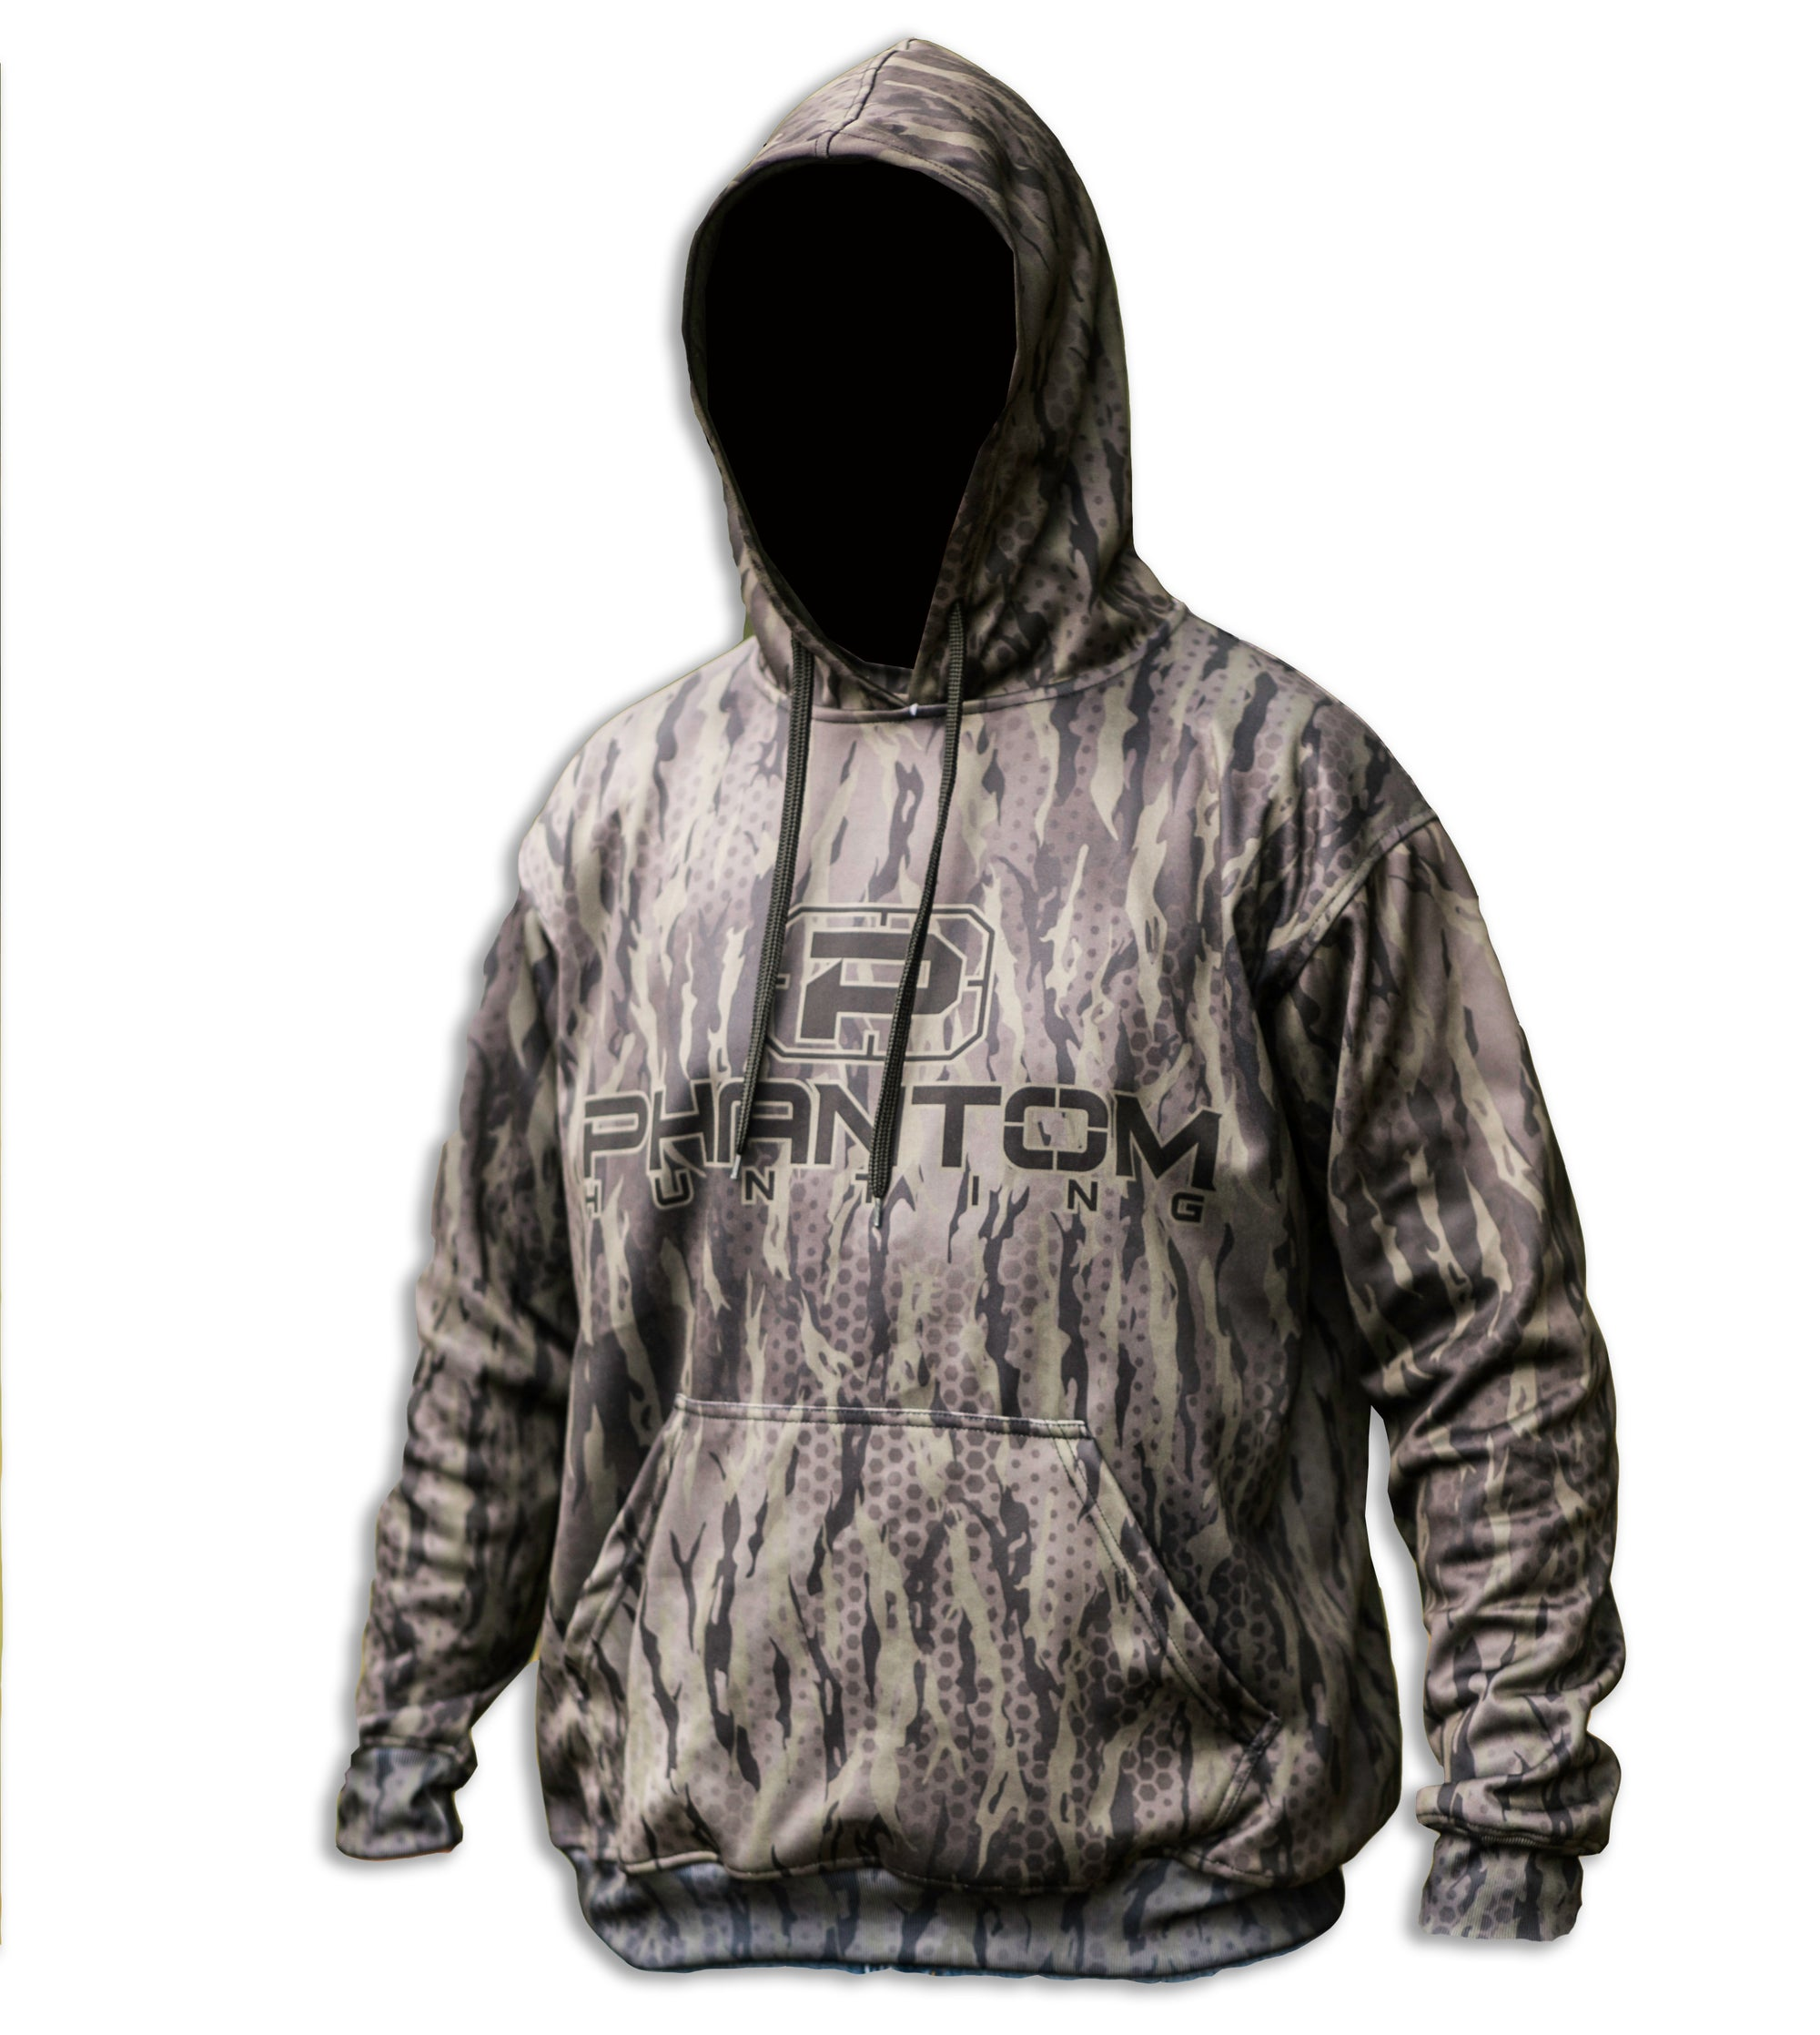 Phantom KNOCKDOWN SERIES Camo Hoodie